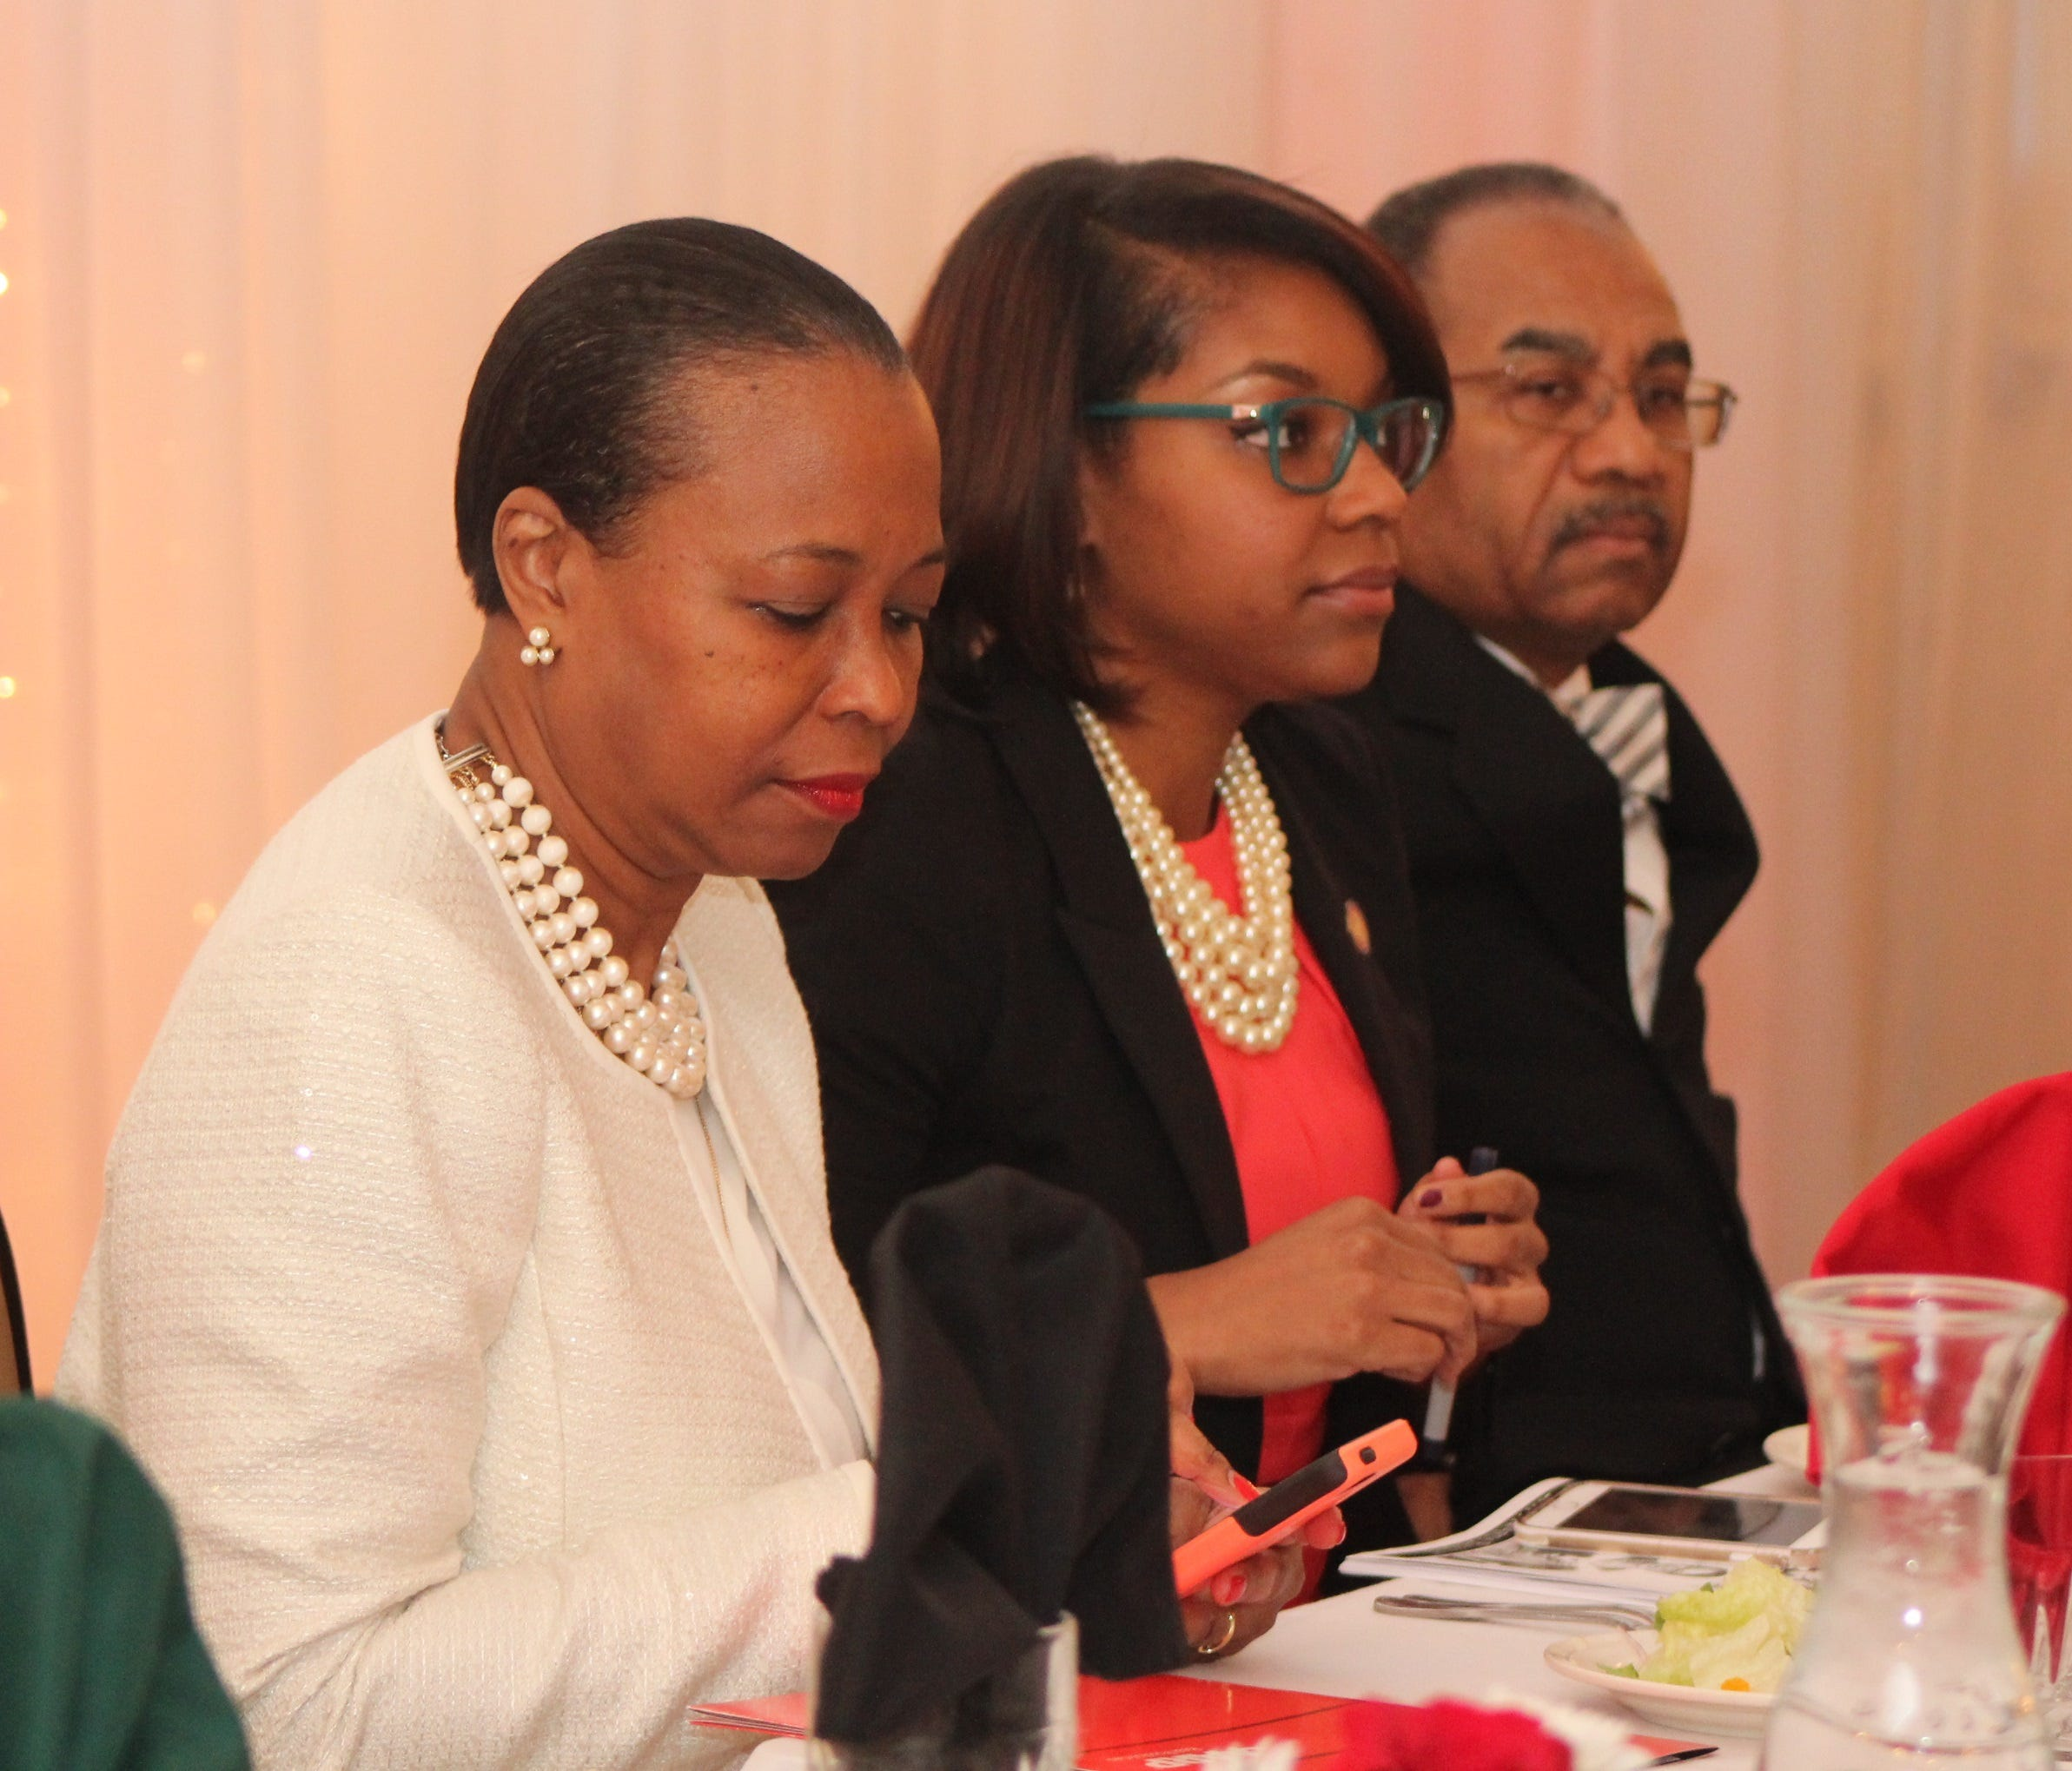 Members of the Sykes family served as co-keynote speakers for the Black Heritage Council banquet: from left, Barbara Sykes, state Rep. Emilia Sykes, D-Akron, and state Sen. Vernon Sykes, D-Akron.